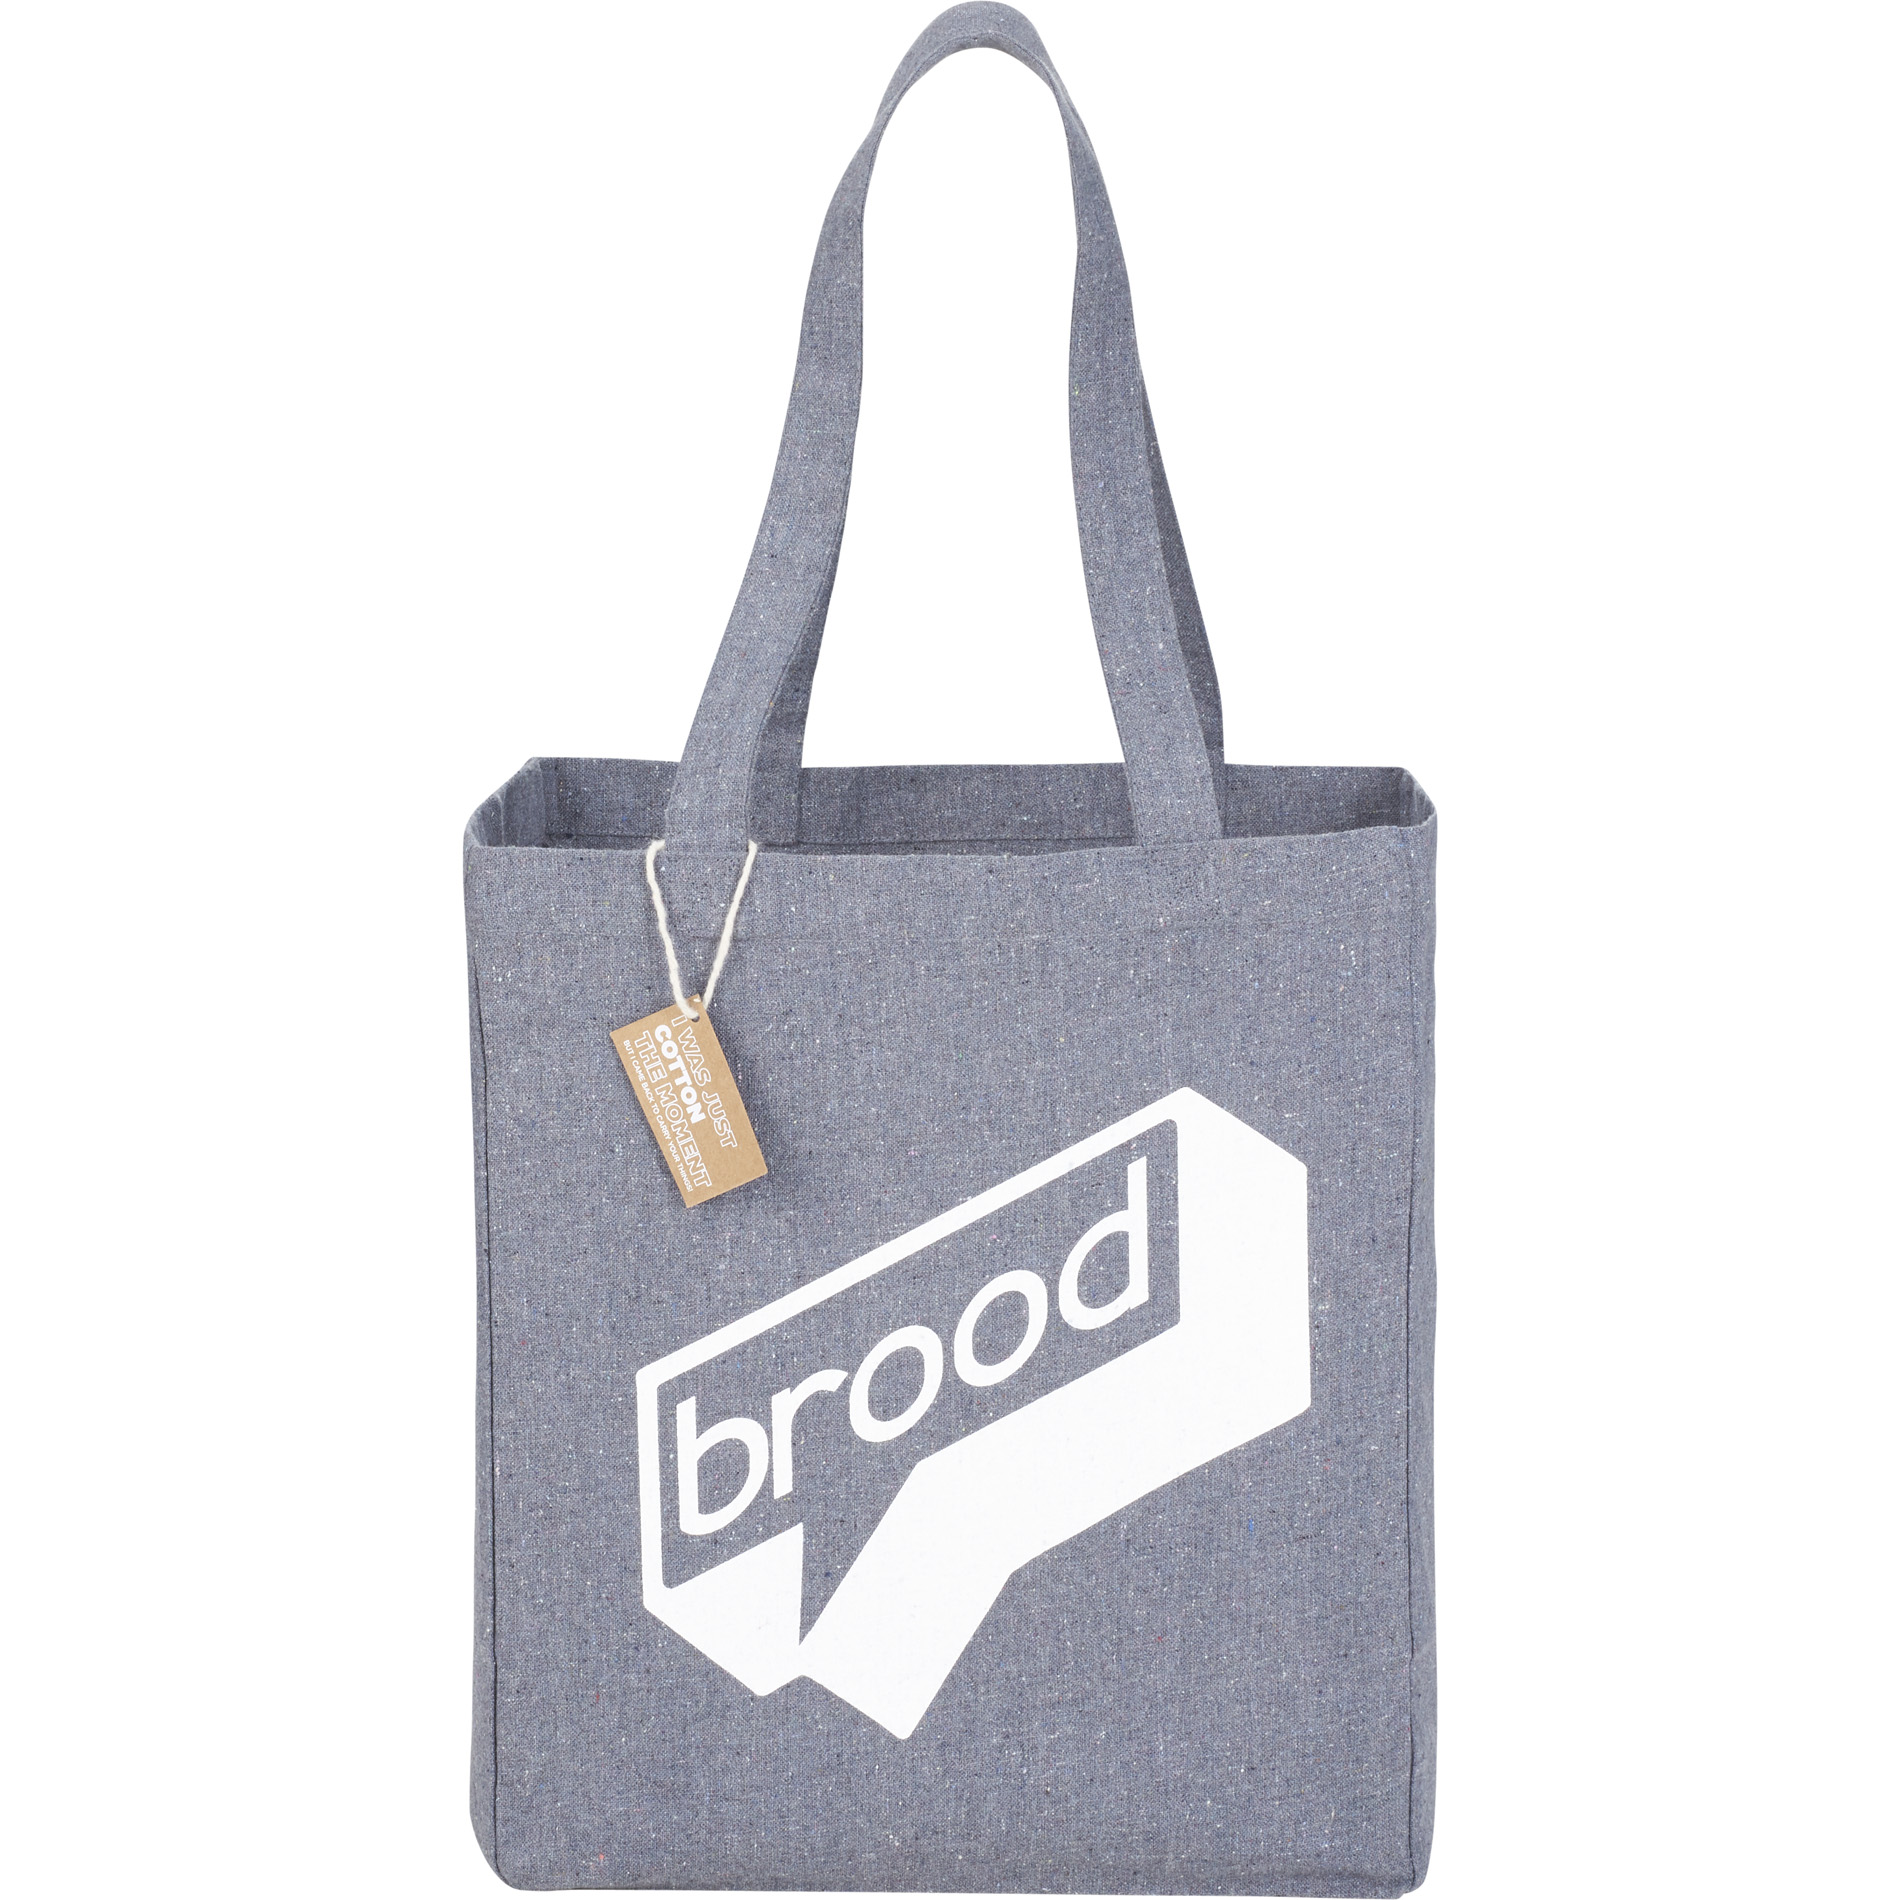 Recycled Cotton Grocery Tote (7901-07)